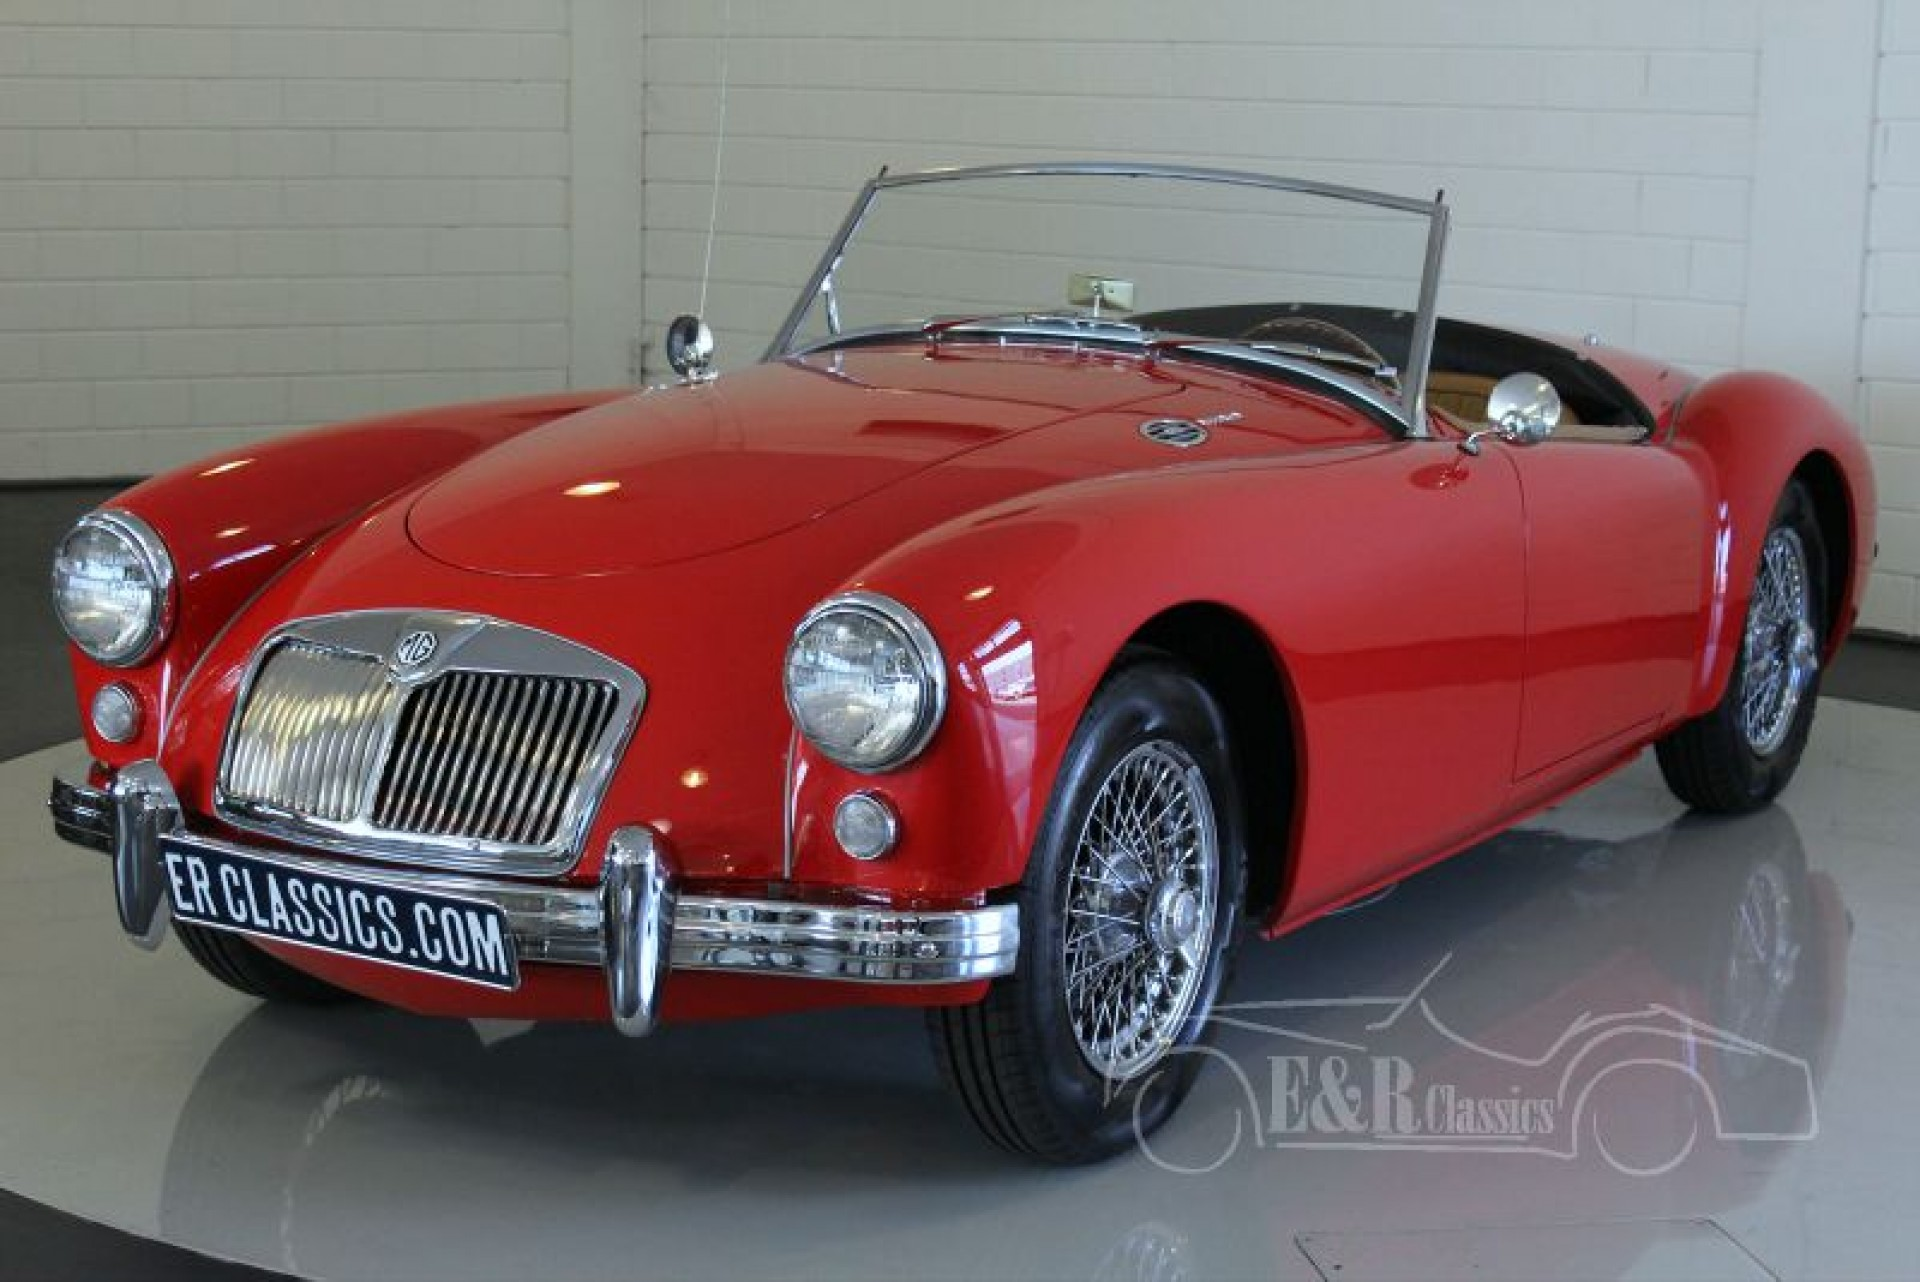 Mga 1600 Roadster 1961 For Sale At Erclassics